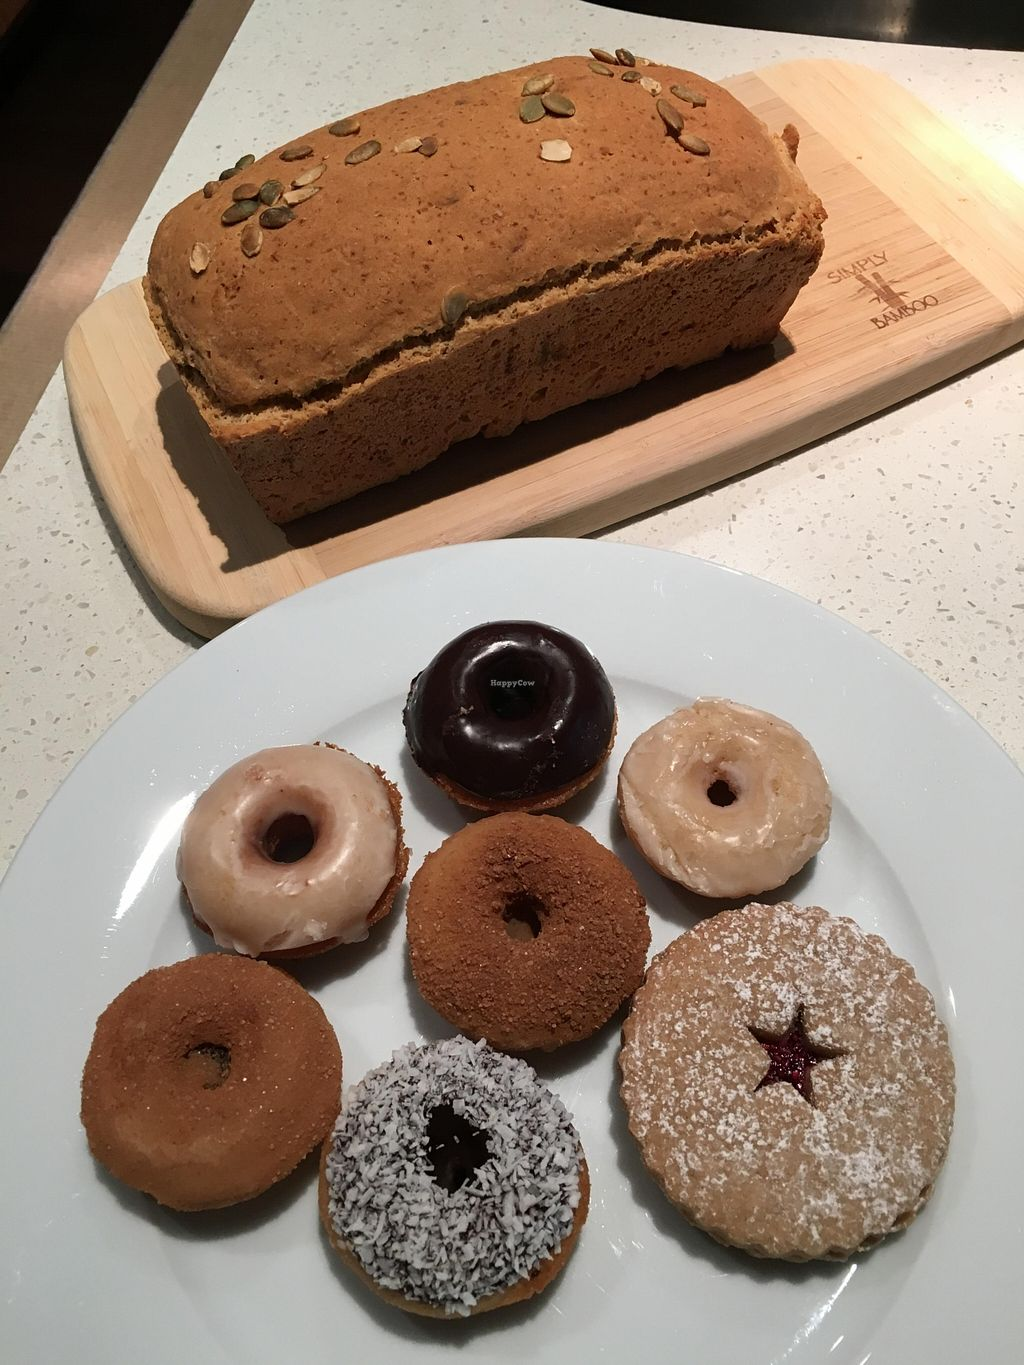 """Photo of Two Daughters Bakeshop  by <a href=""""/members/profile/vegan%20frog"""">vegan frog</a> <br/>Bread, donuts and cookies <br/> April 9, 2016  - <a href='/contact/abuse/image/62376/143679'>Report</a>"""